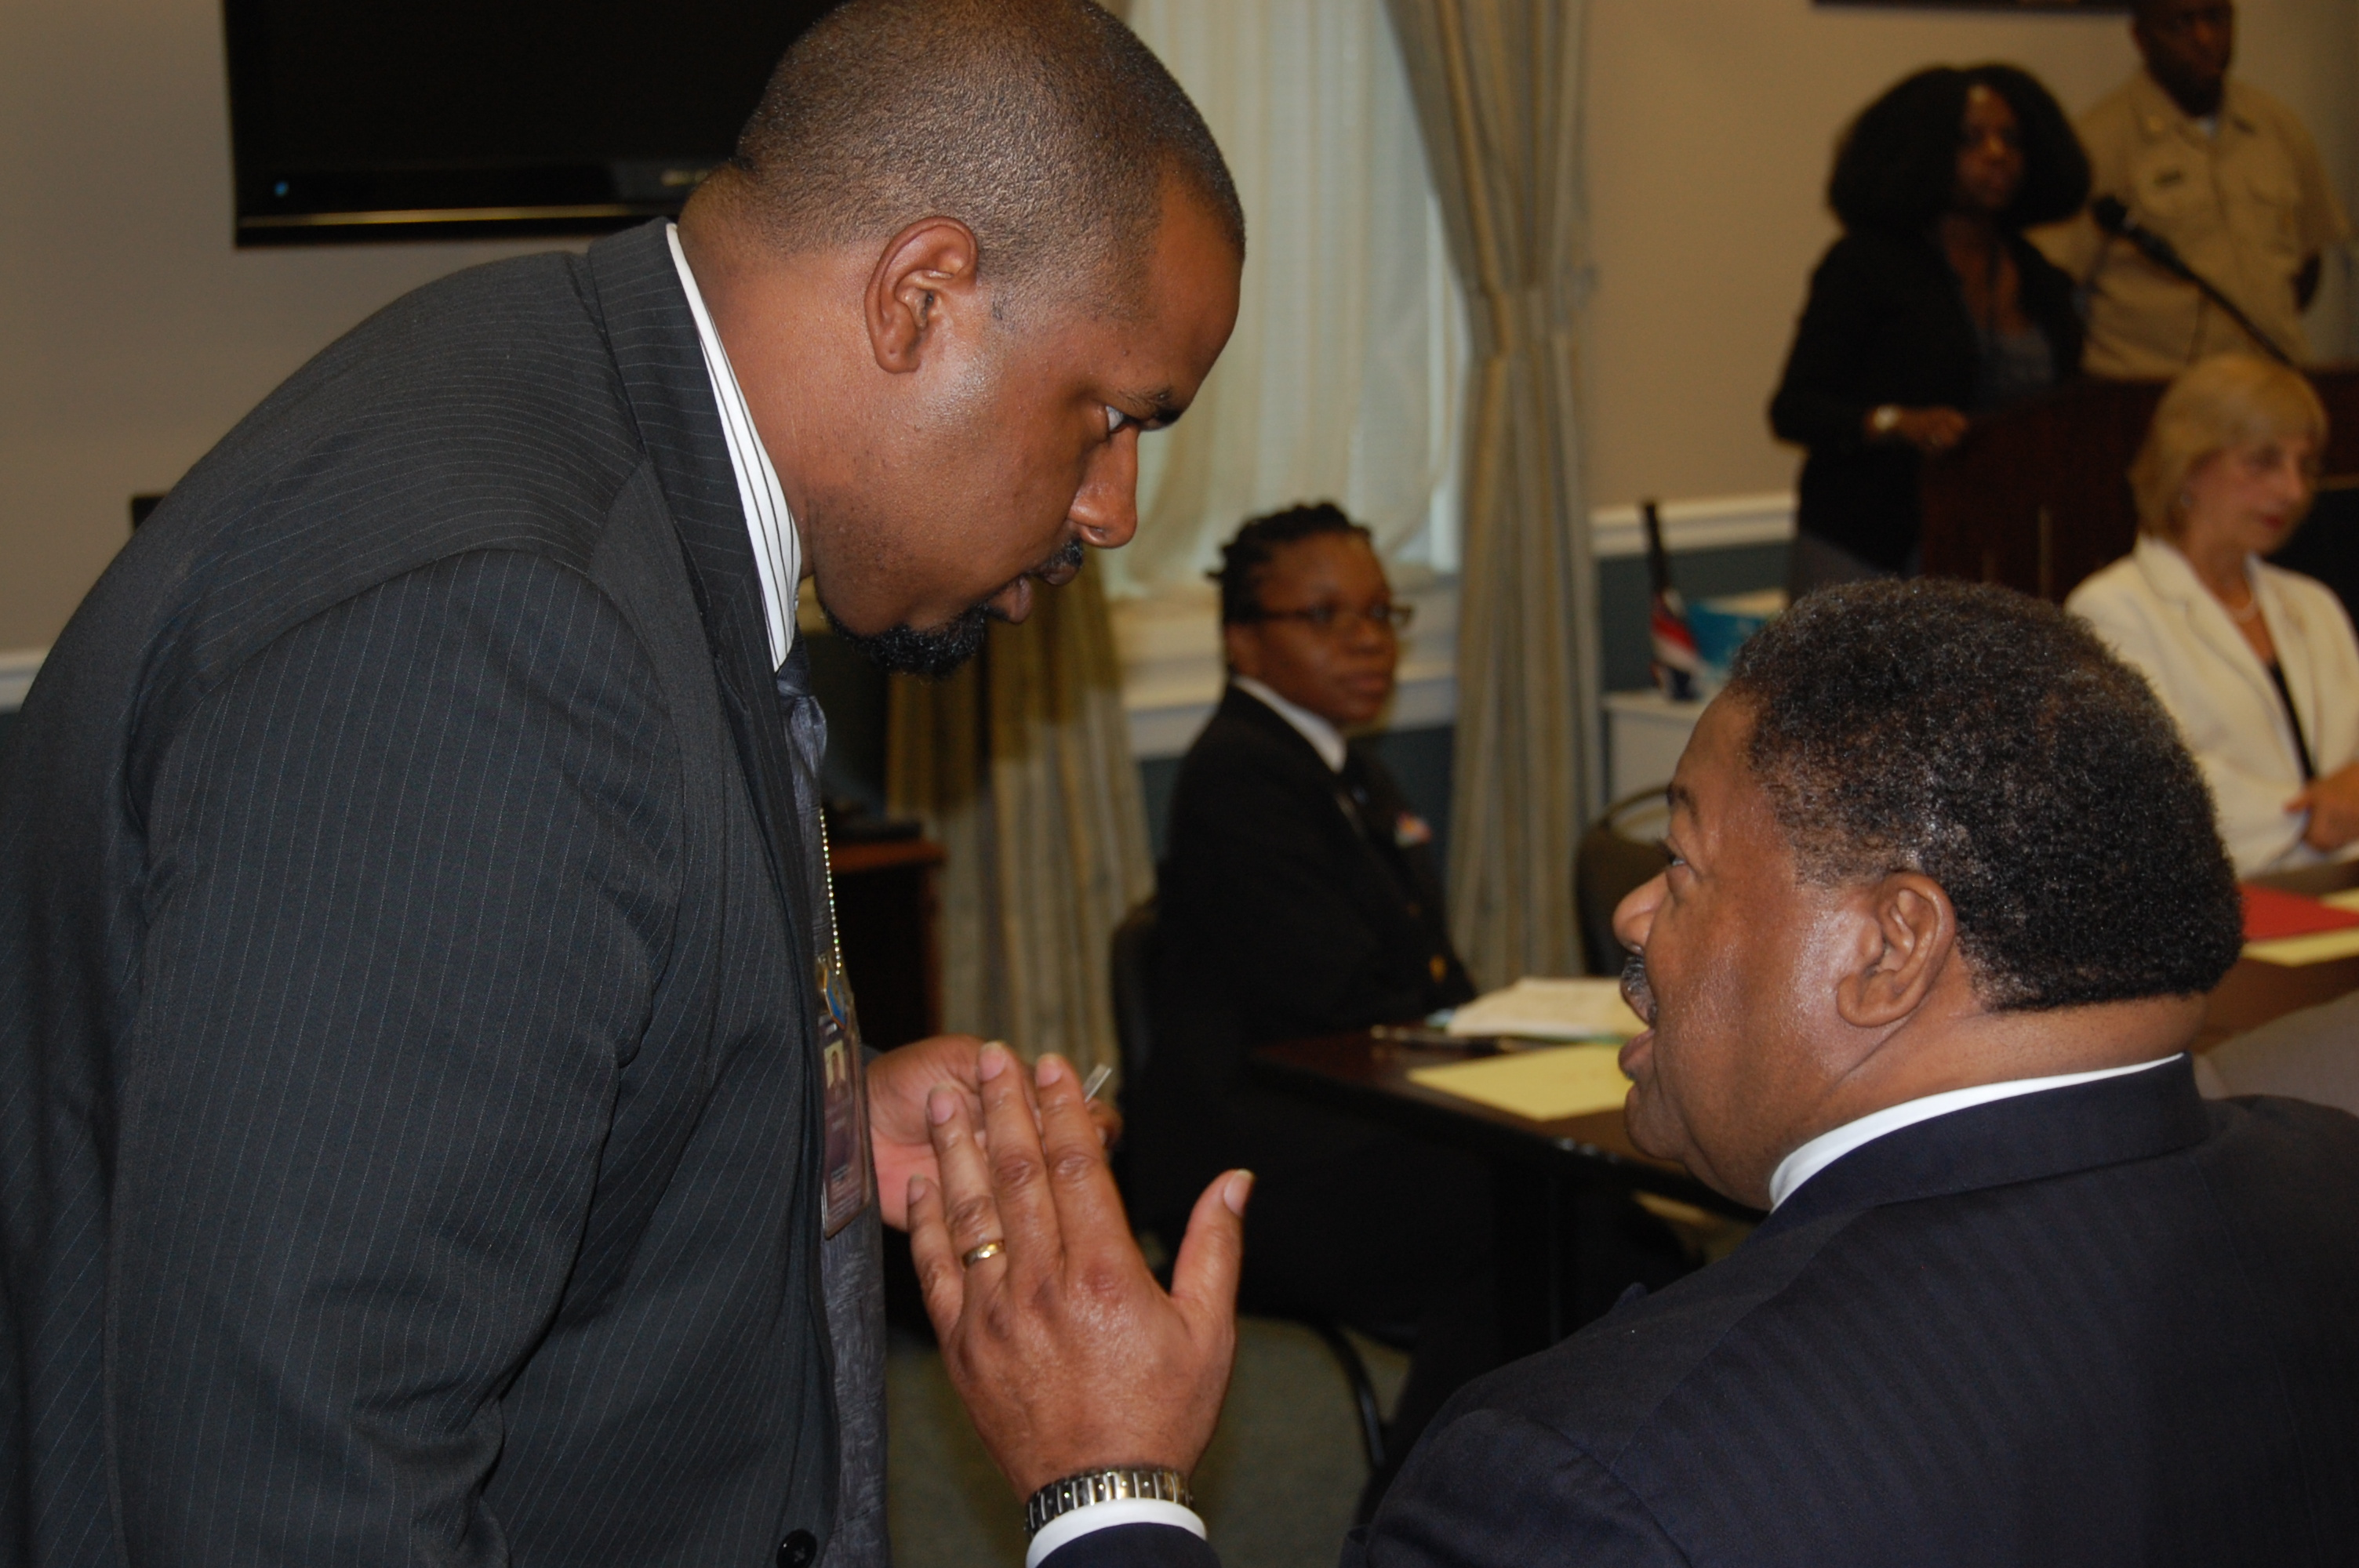 Dr. George W. Waddles and Joshua DuBois at Sickle Cell Roundtable